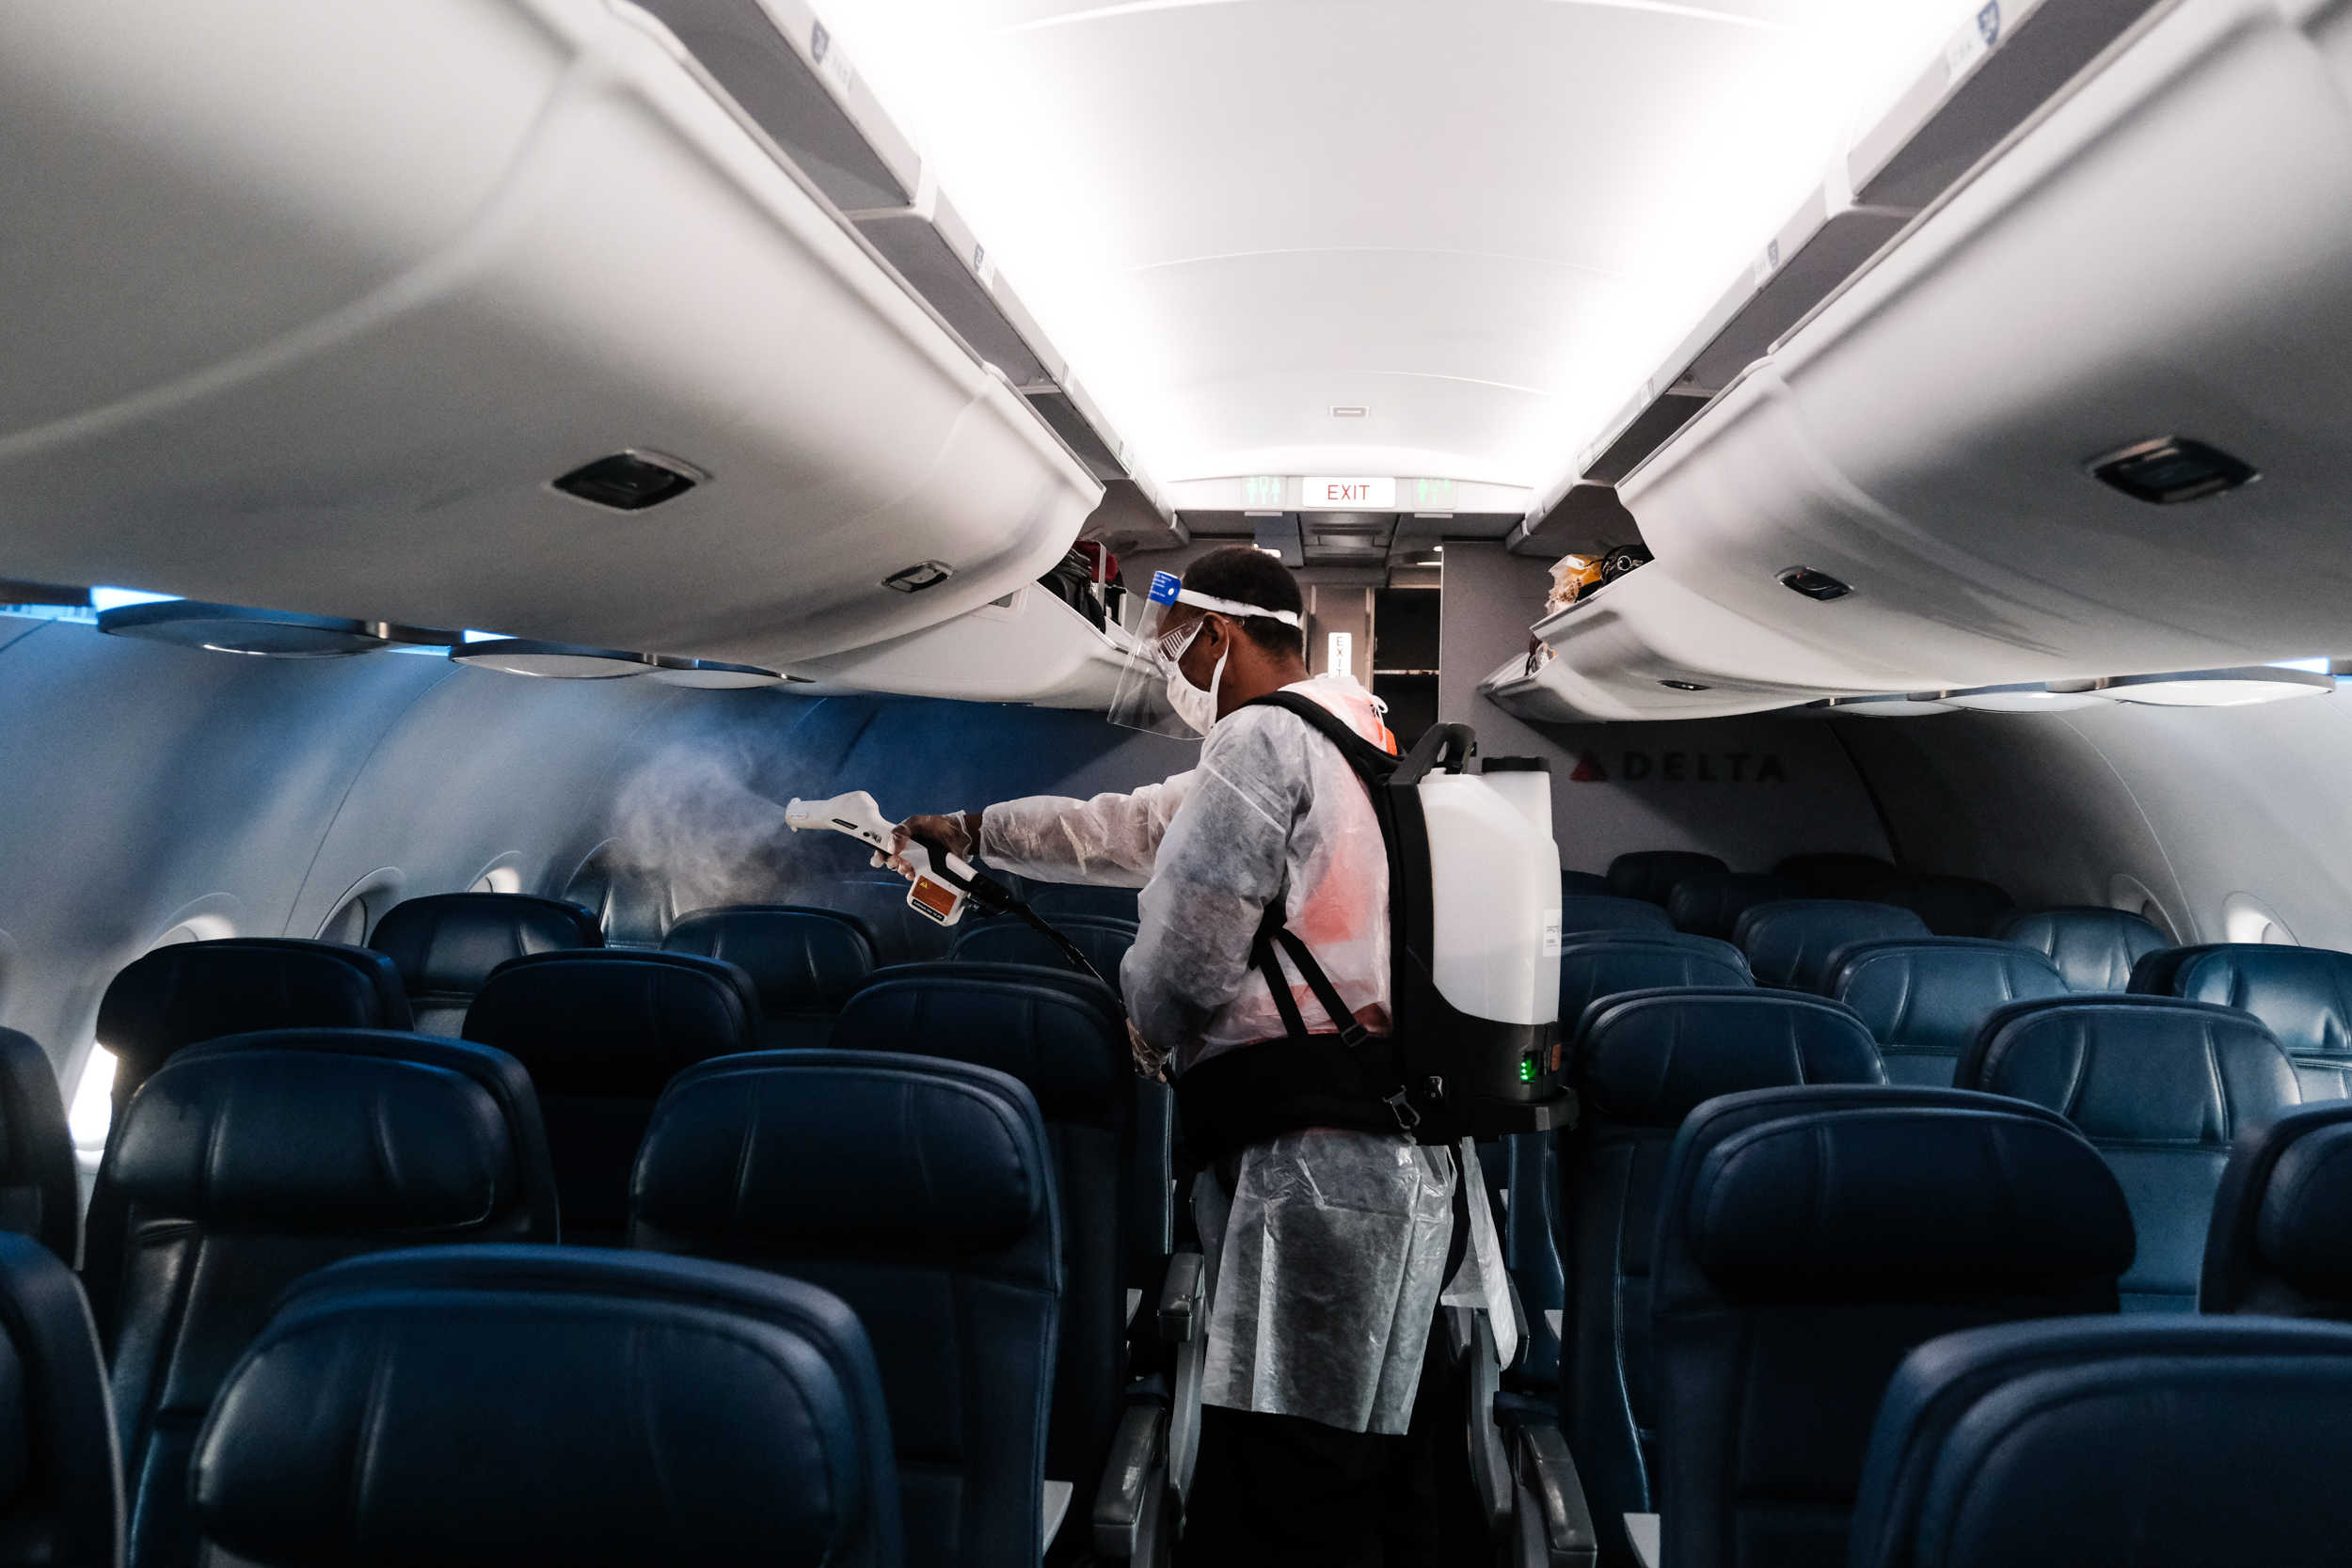 How likely is it to contract COVID-19 on a plane?